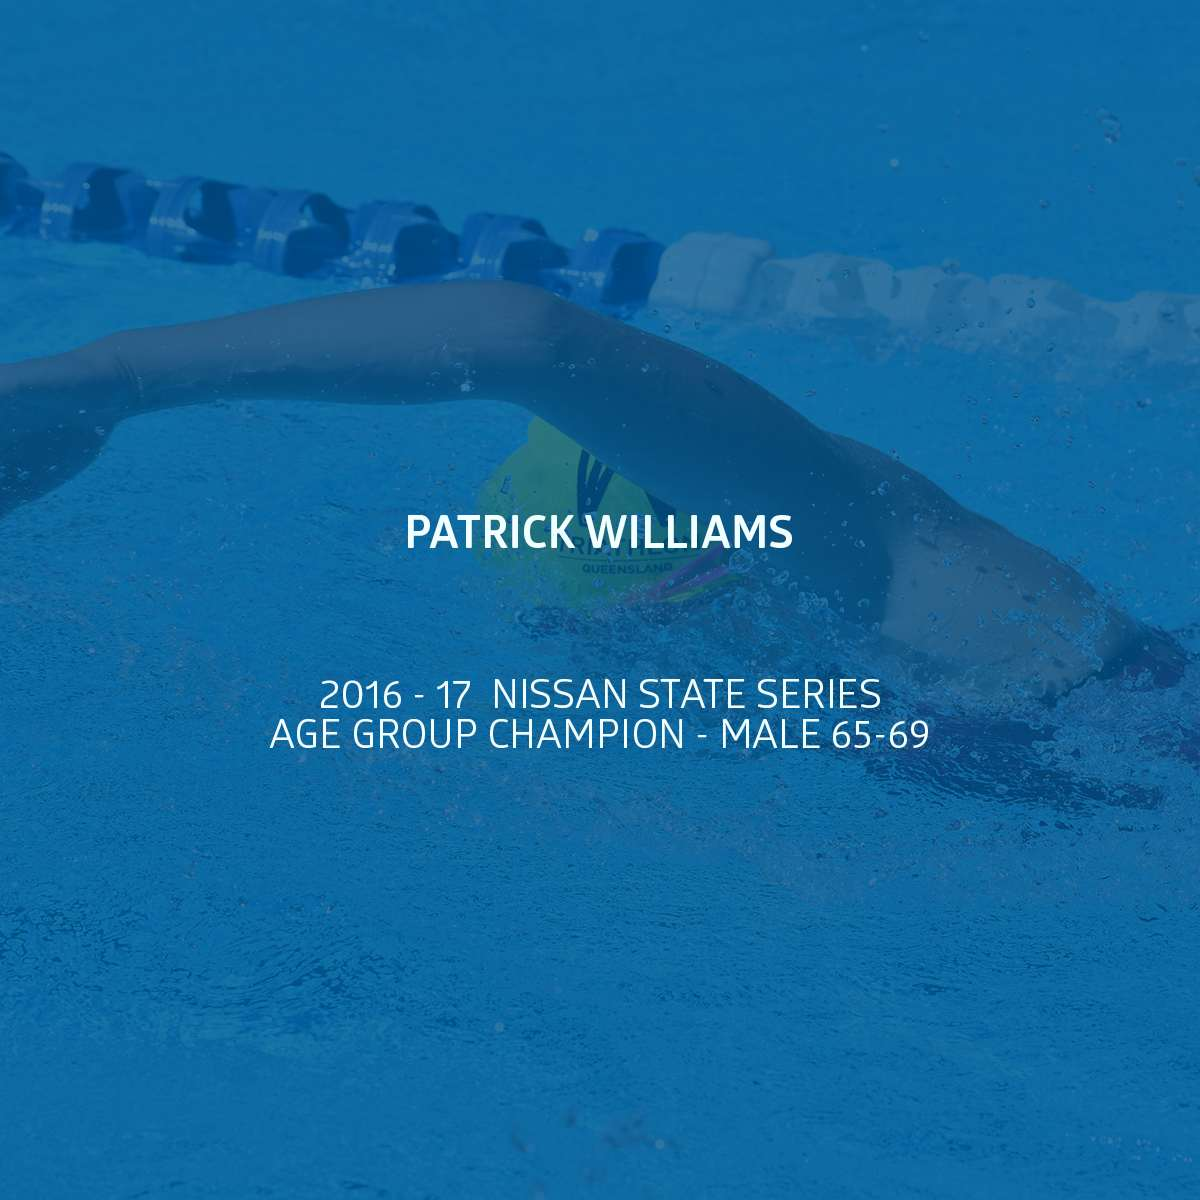 Patrick Williams(1)